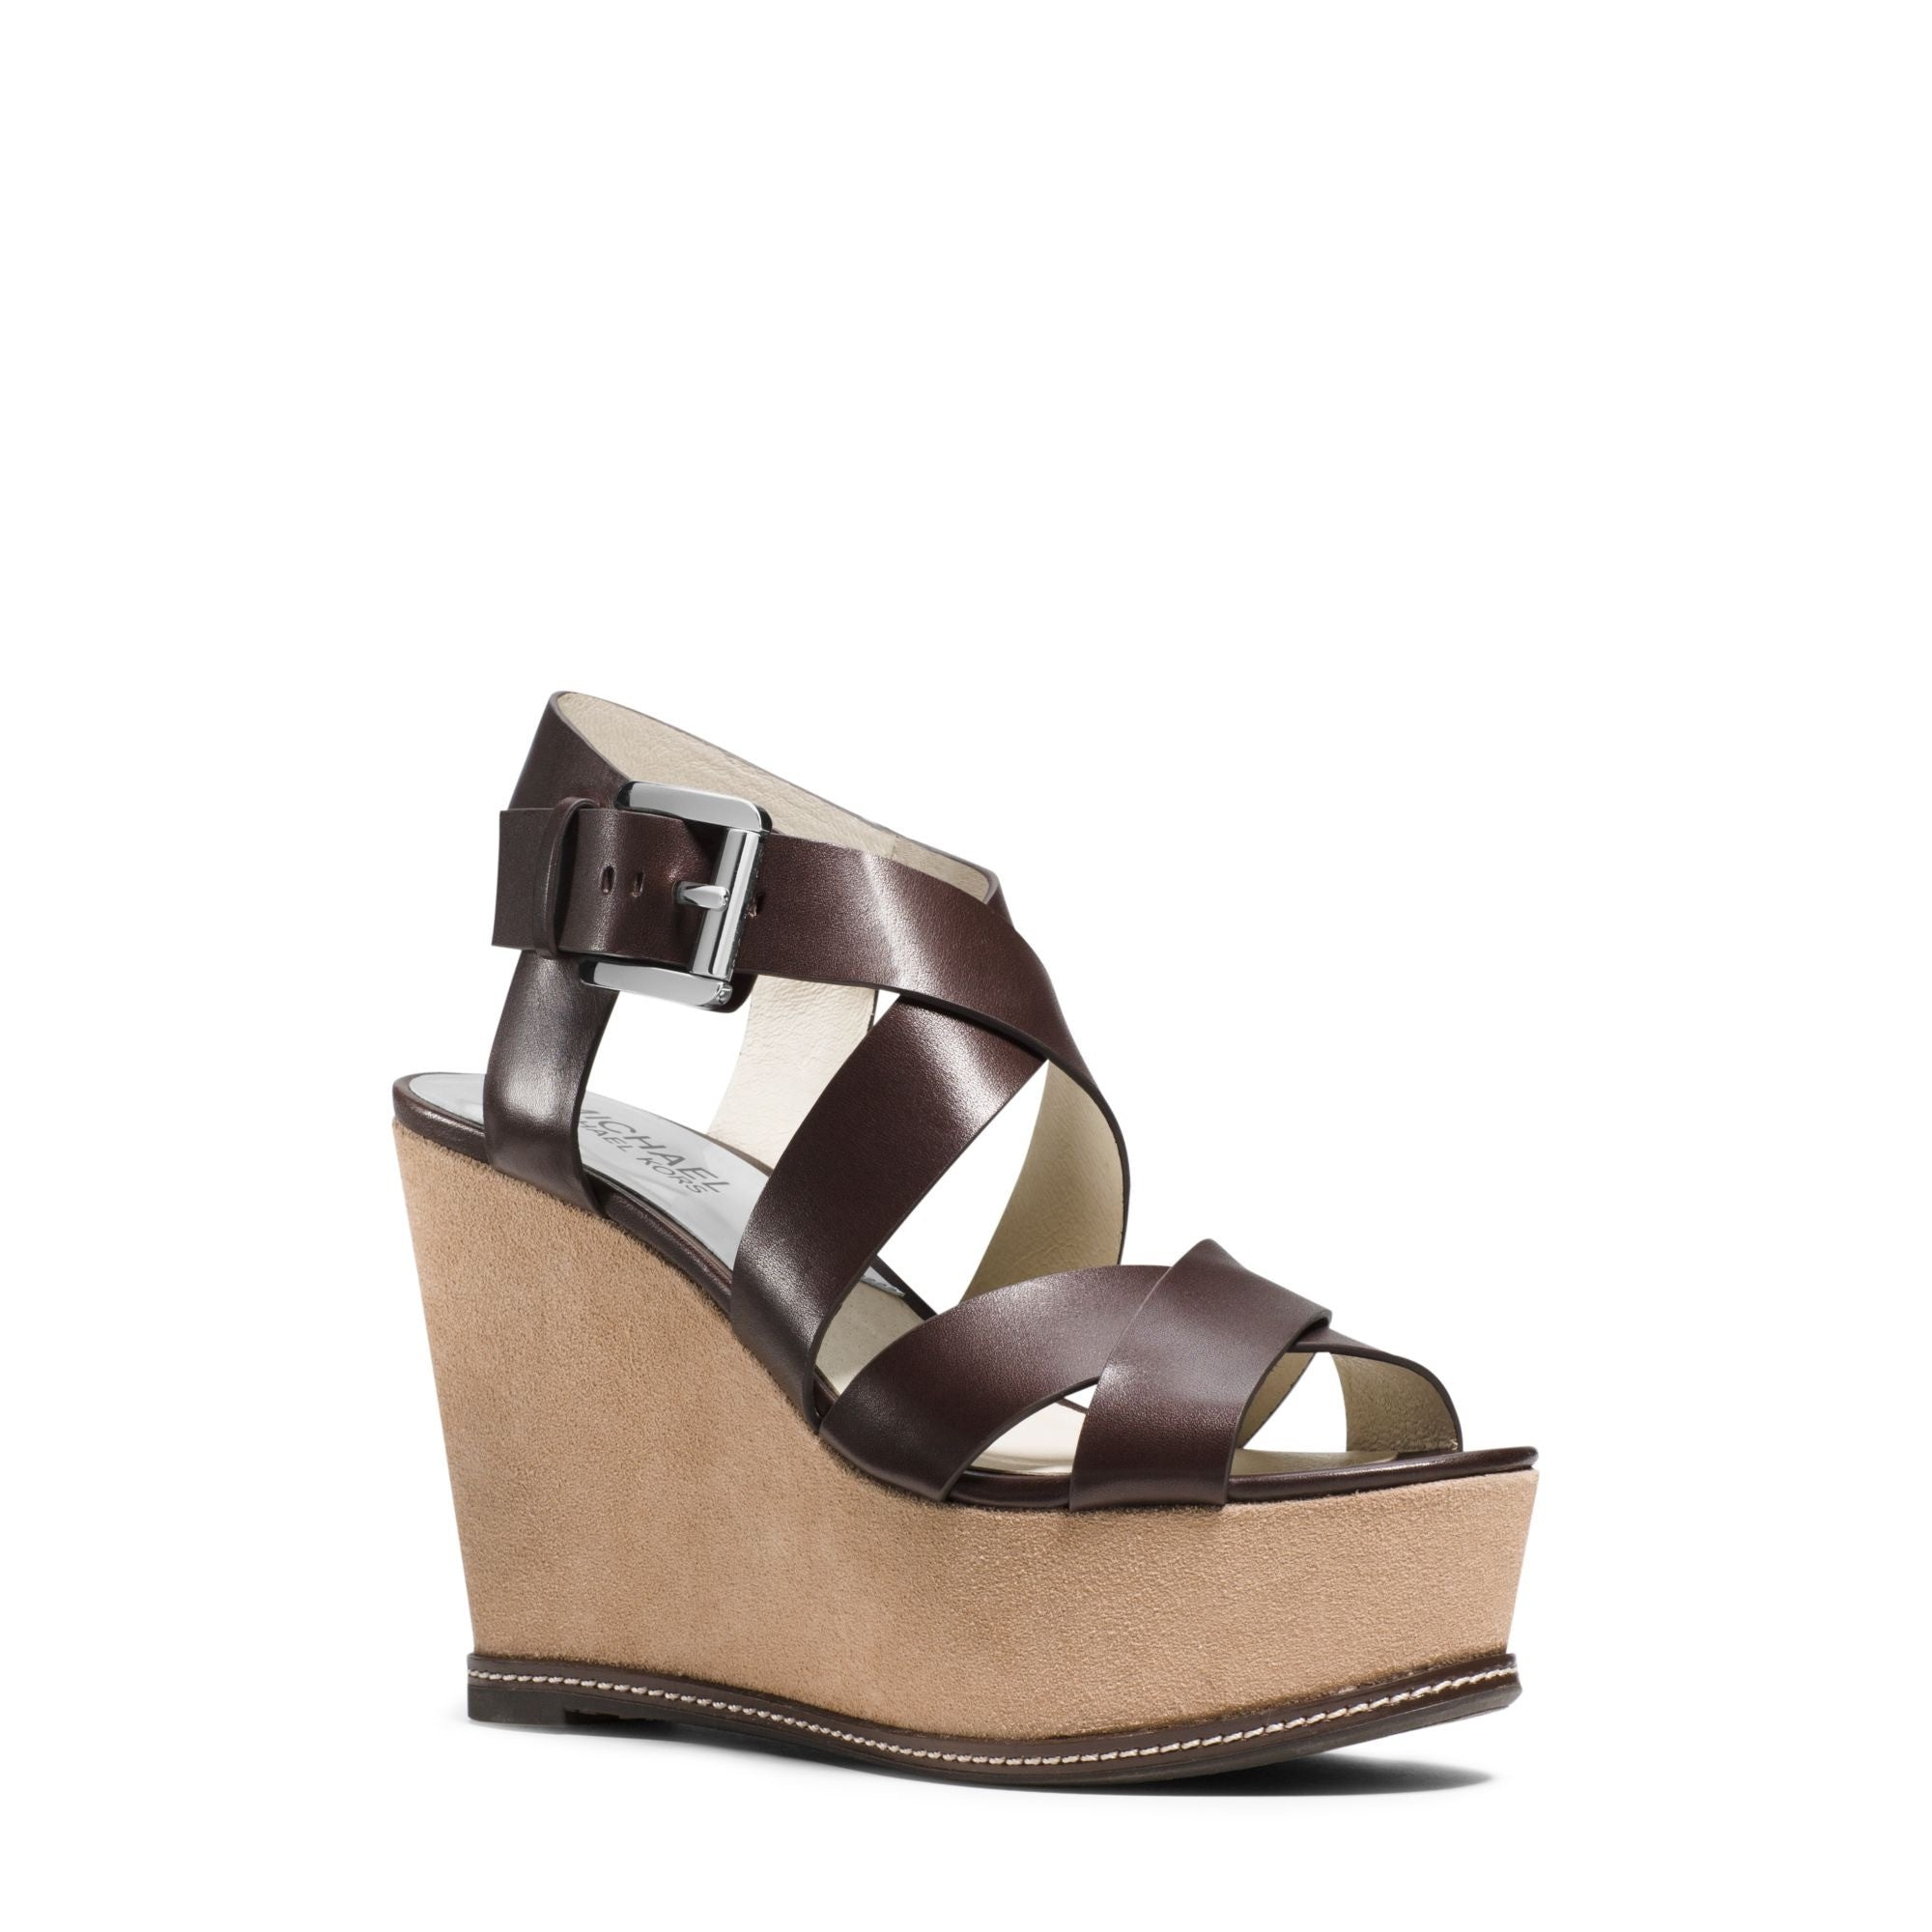 MICHAEL KORS Celia Mid Wedge Sandals shoes